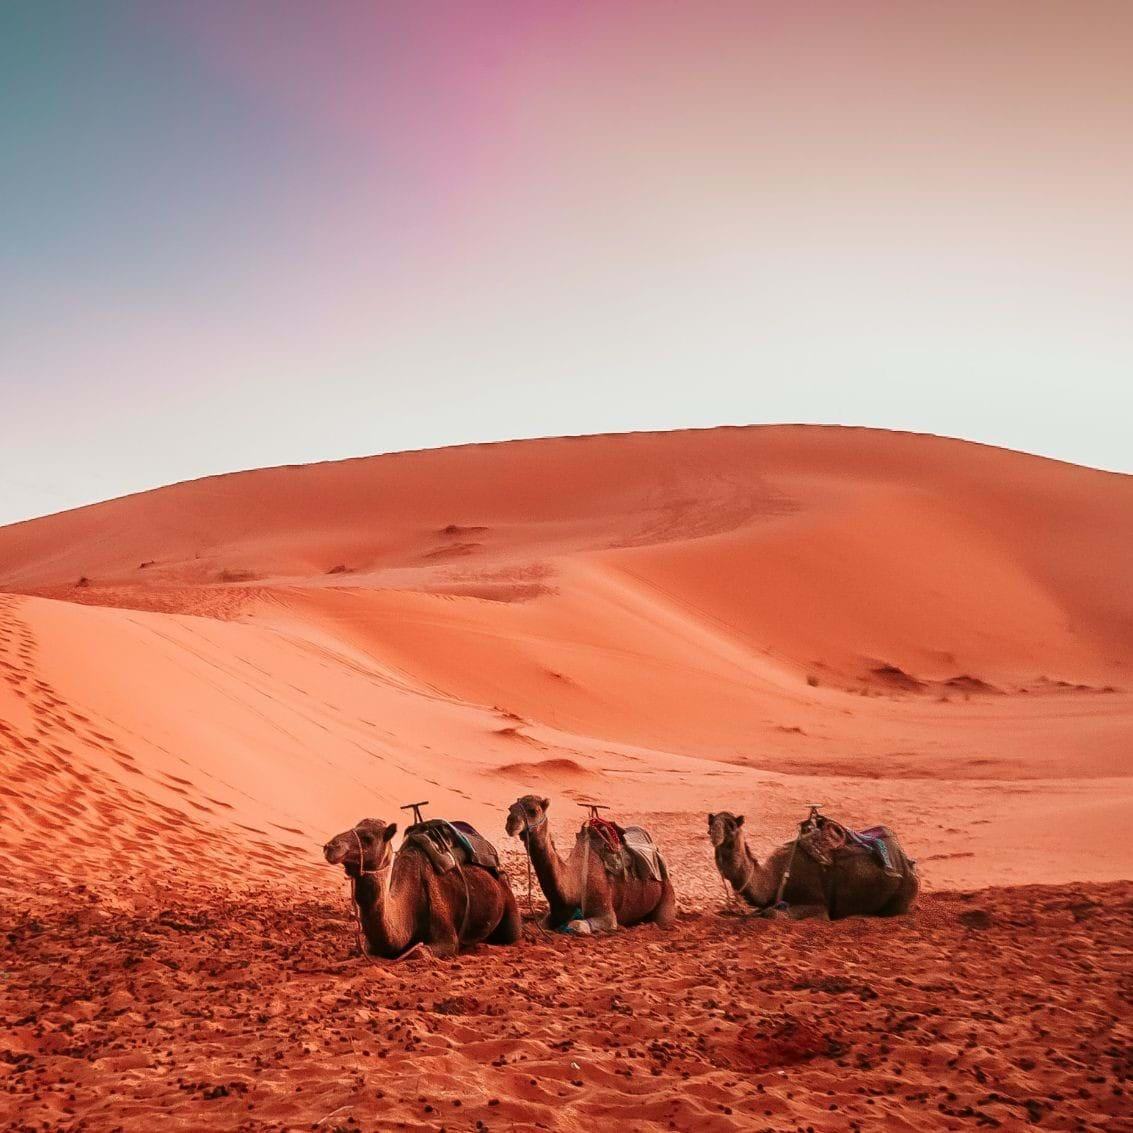 Camels in the Sahara Desert in front of sand dunes at sunset